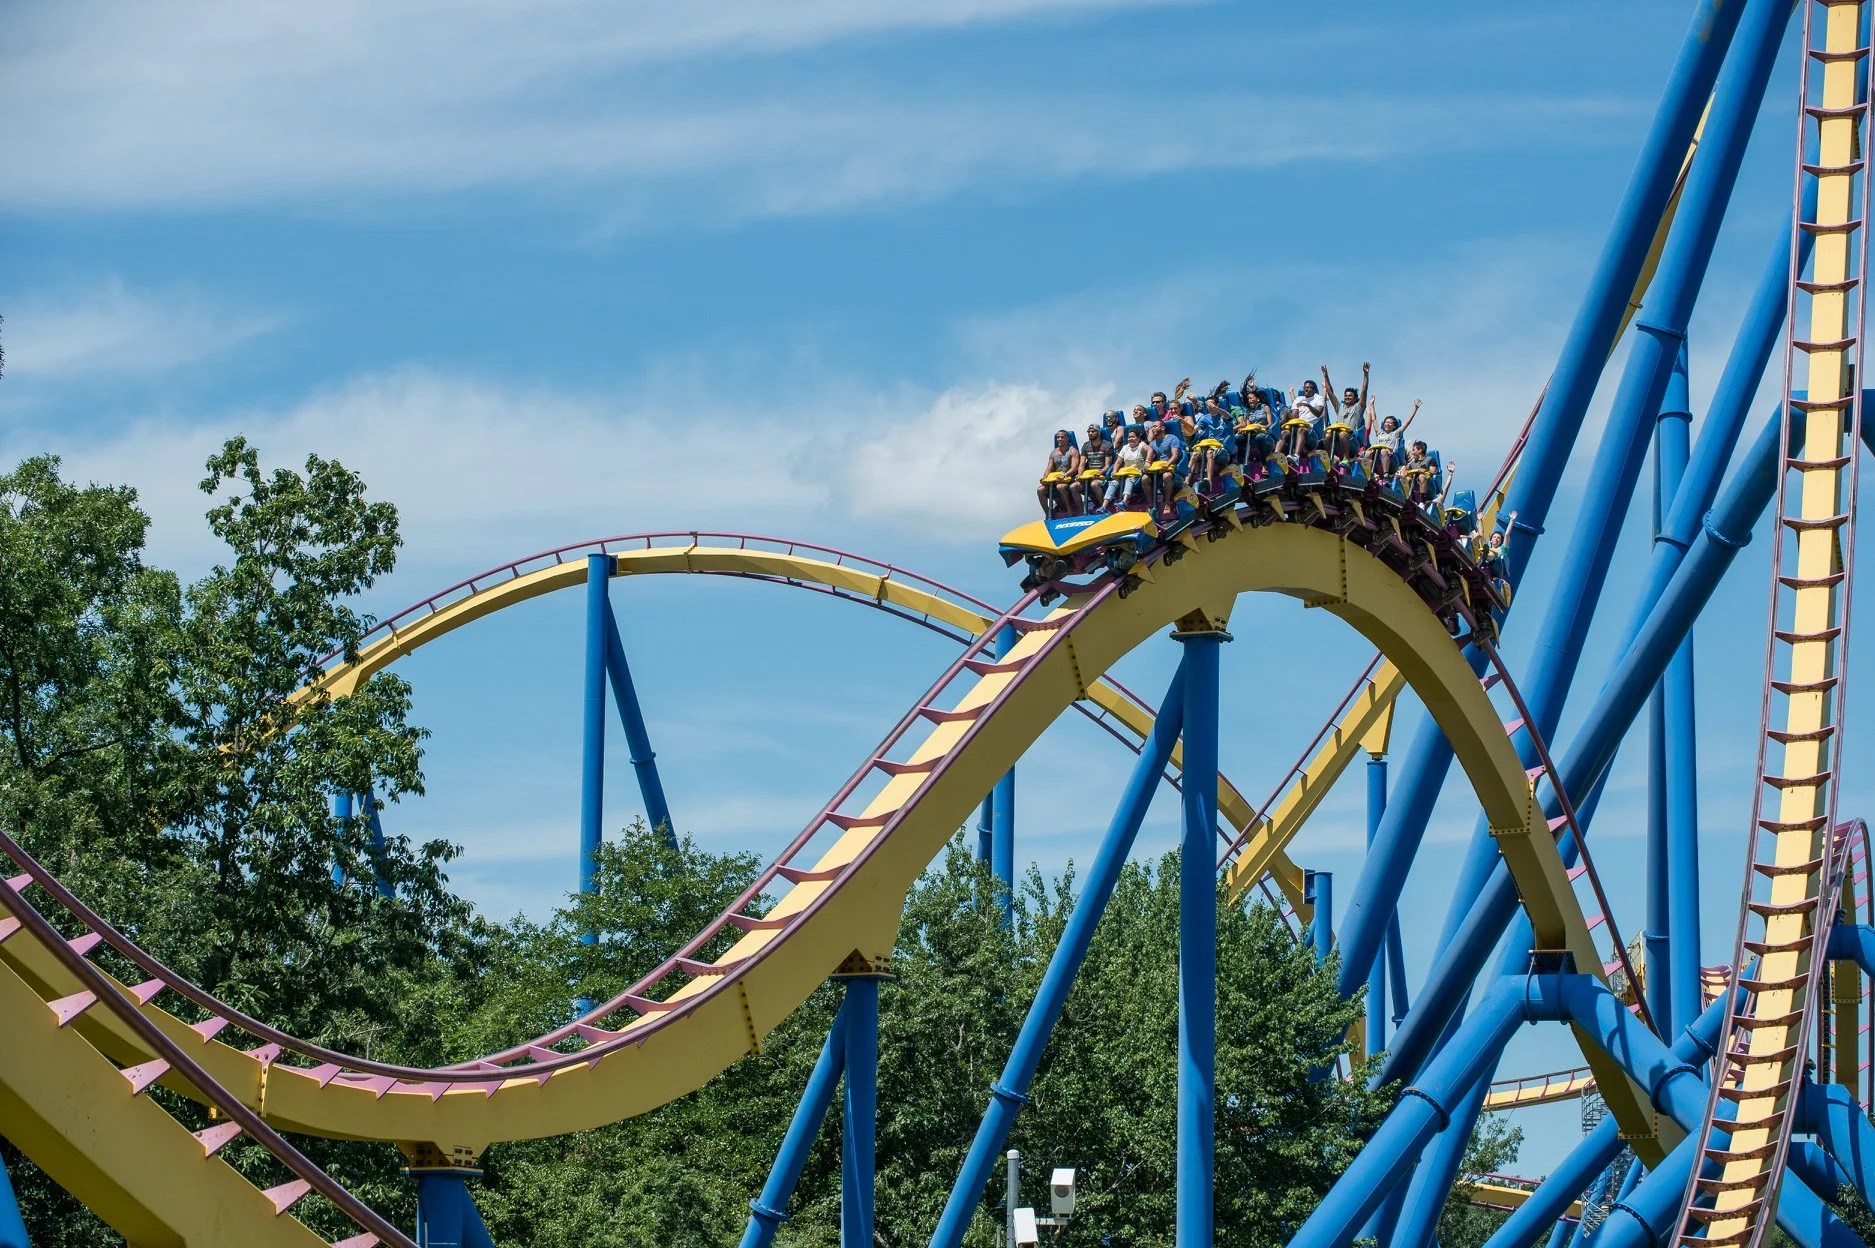 Everything You Need to Know About Six Flags Great Adventures — One of the Largest Theme Parks in the World